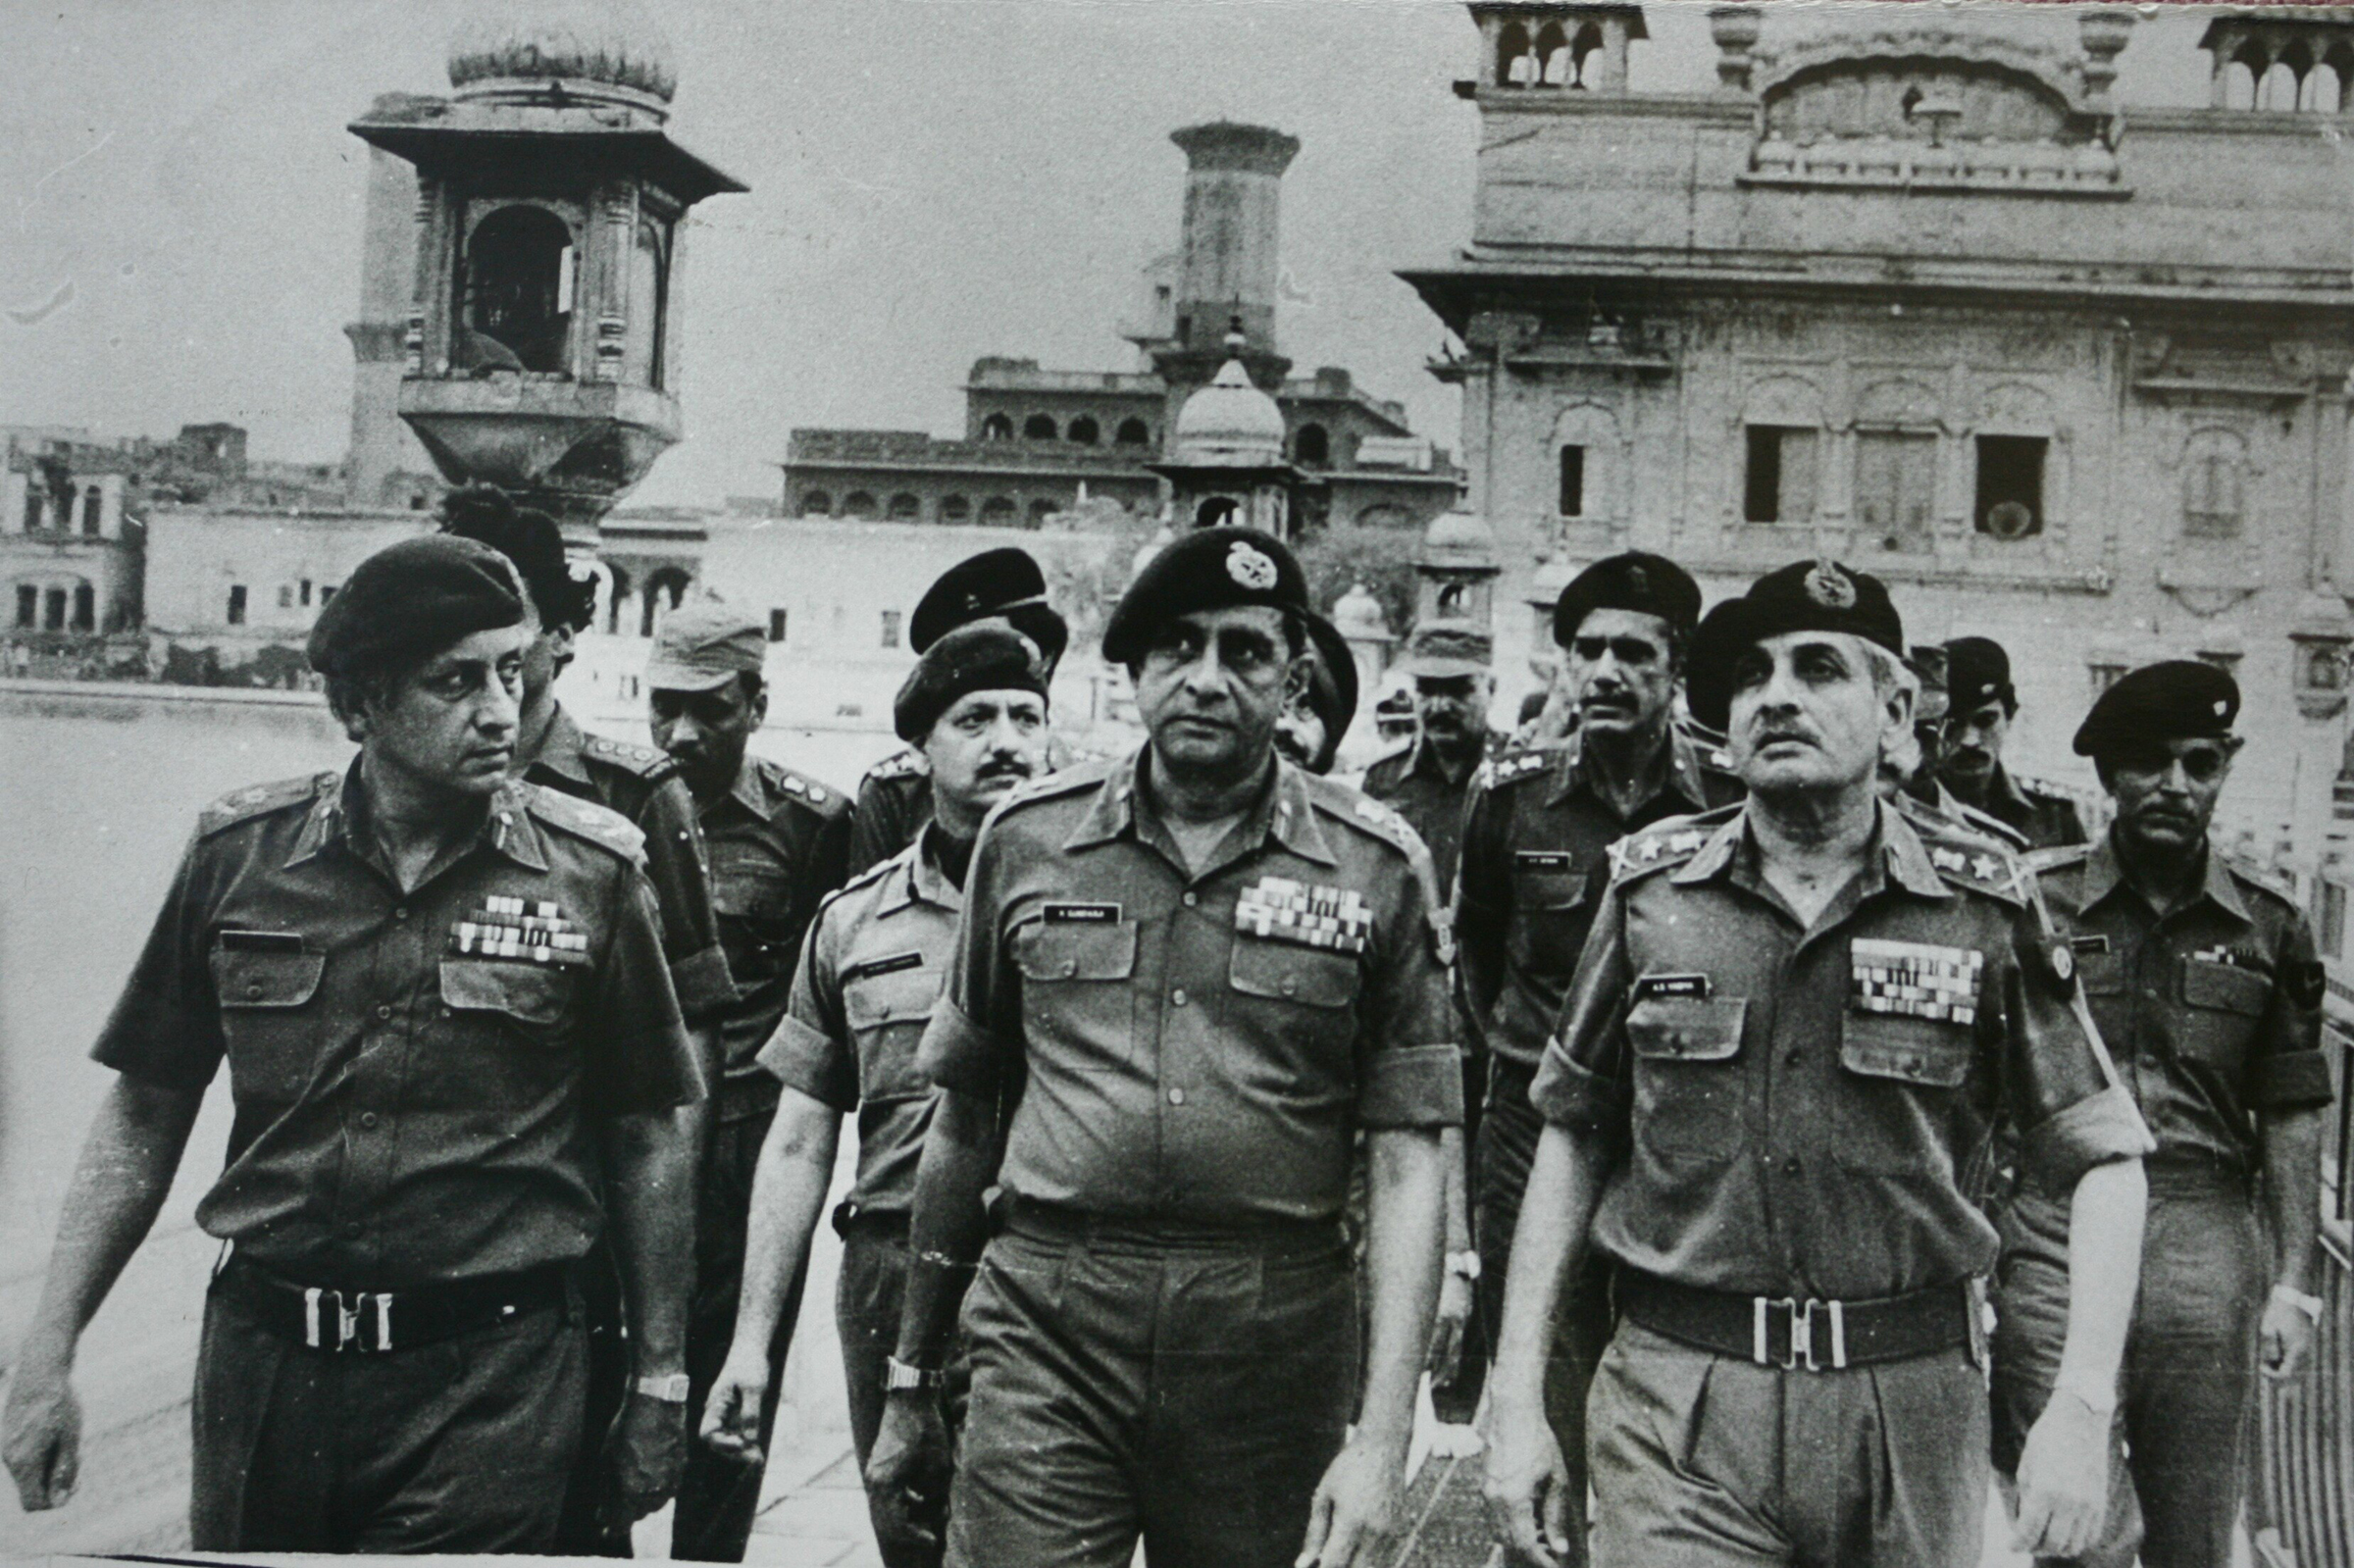 Senior army officers at the site of a military operation ordered by Then-Prime Minister Indira Gandhi, to remove Sikh separatists in the Golden Temple in Amritsar, India, in 1984.